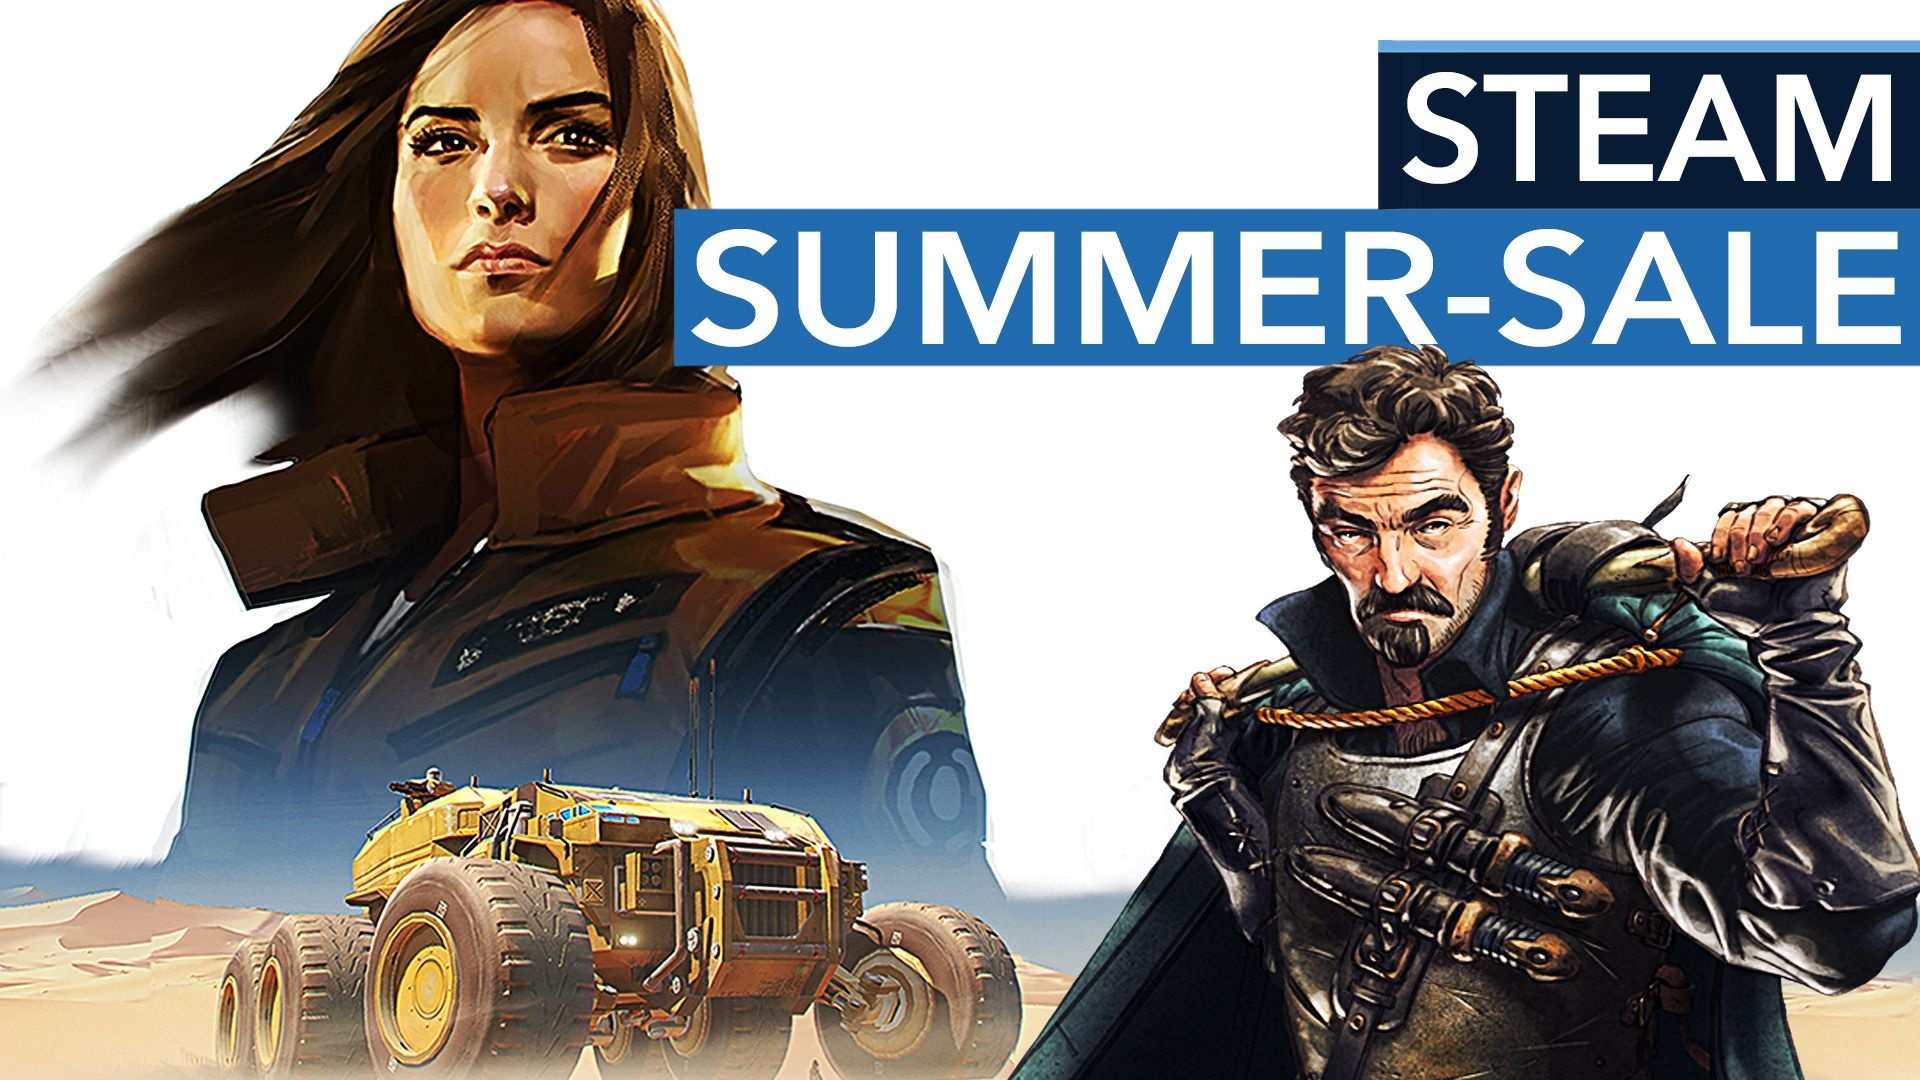 Steam Summer Sale - Die Tipps der Redaktion